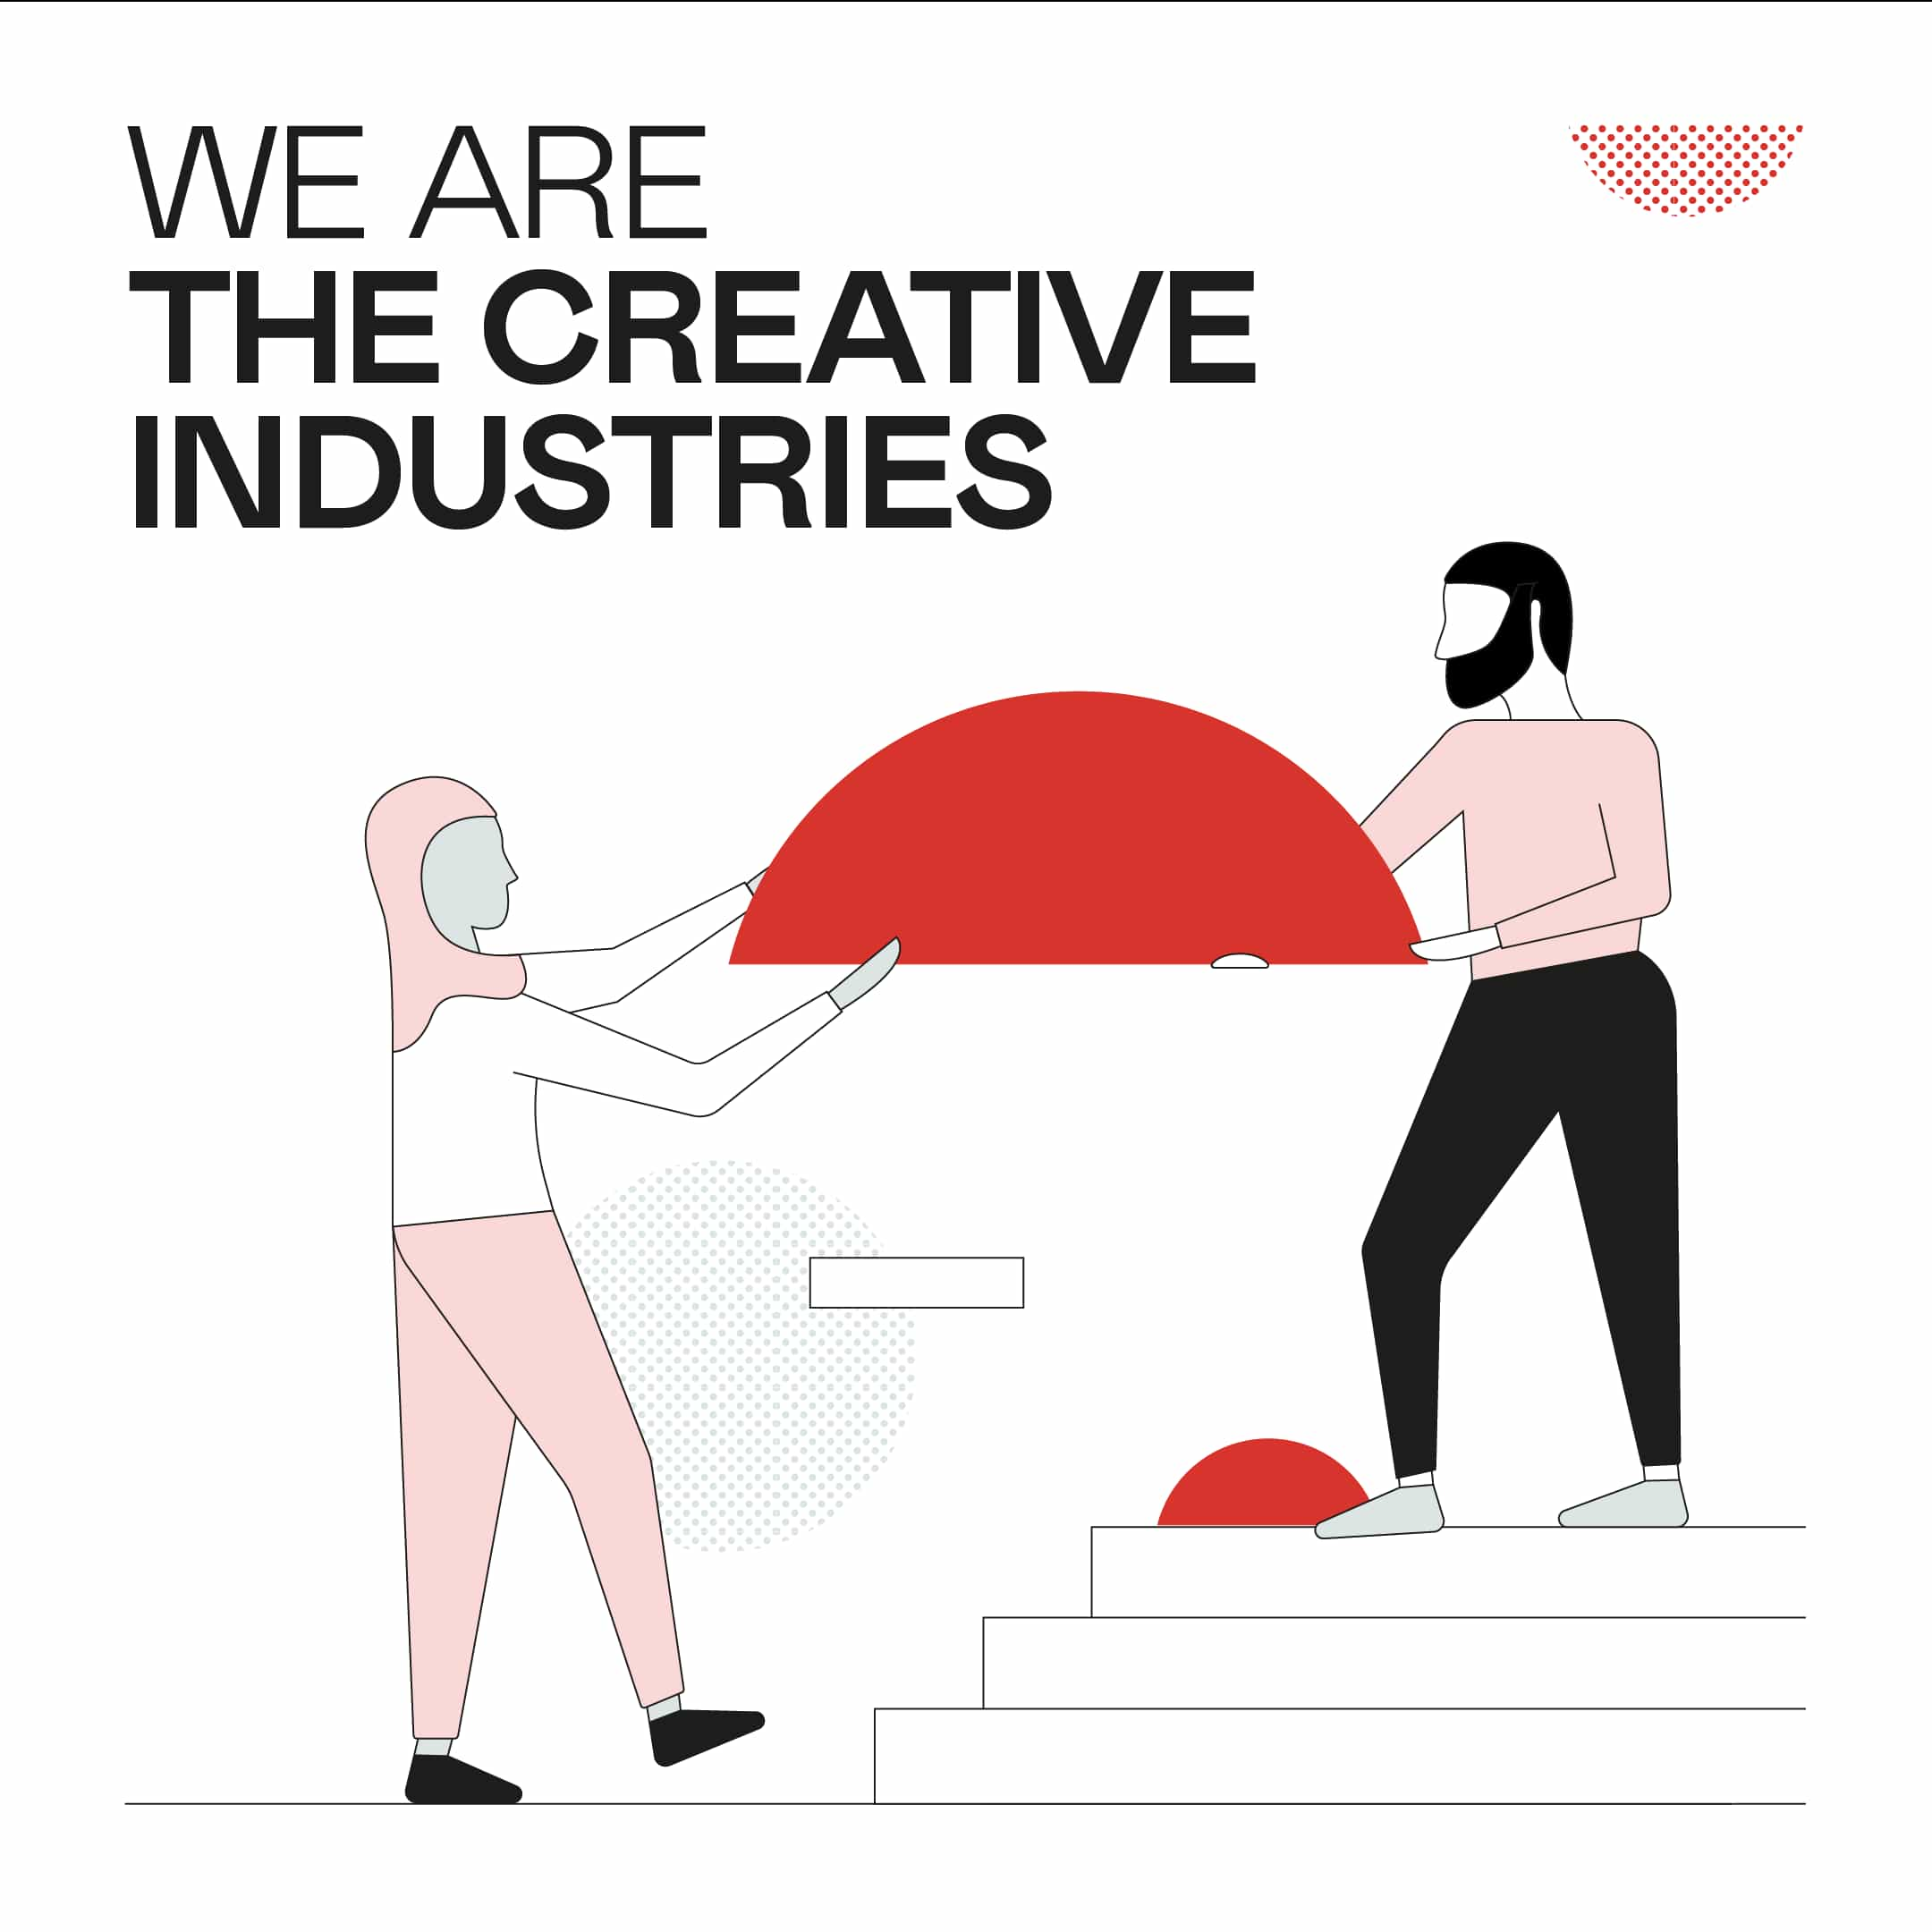 Invest in creativity for 300,000 new jobs, report advises